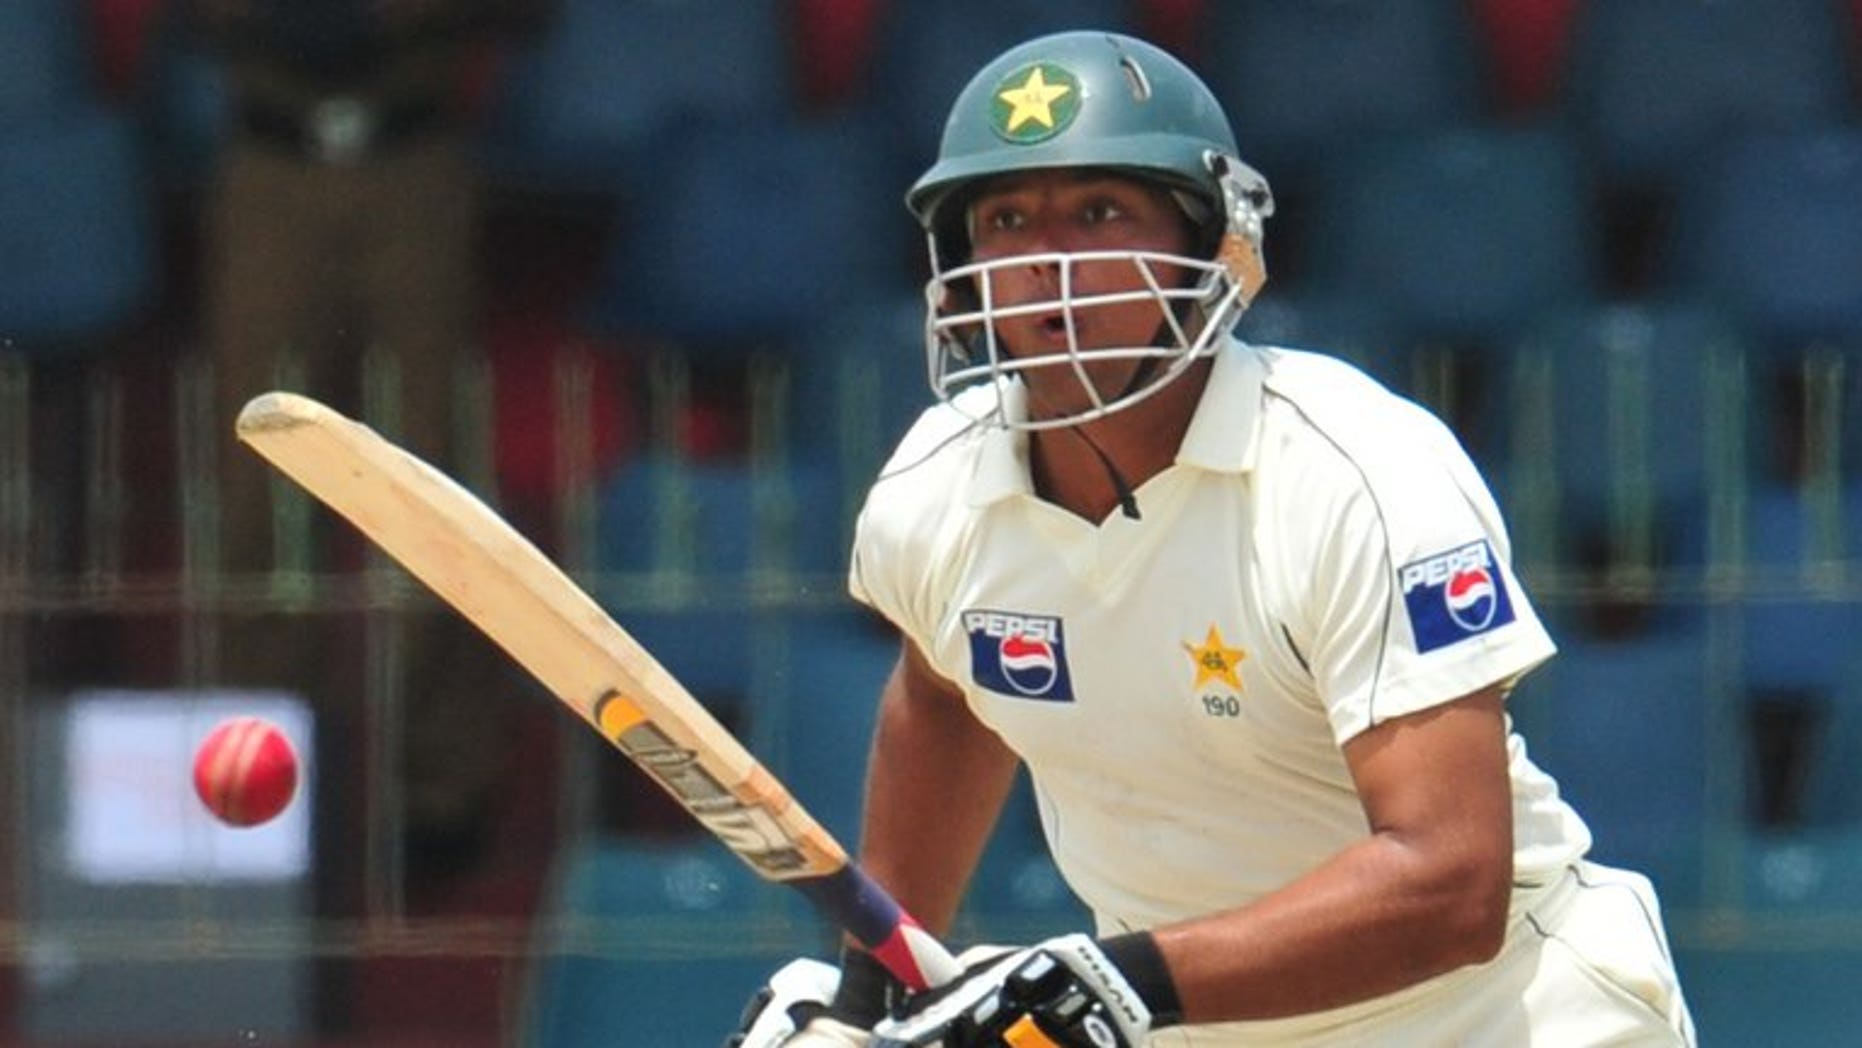 Pakistan's Khurram Manzoor plays a shot during the third and final Test match against Sri Lanka in Colombo, on July 20, 2009. Manzoor has been recalled to the Test squad for the tour of Zimbabwe later this month, but there was no room in the squad for giant paceman Mohammad Irfan.